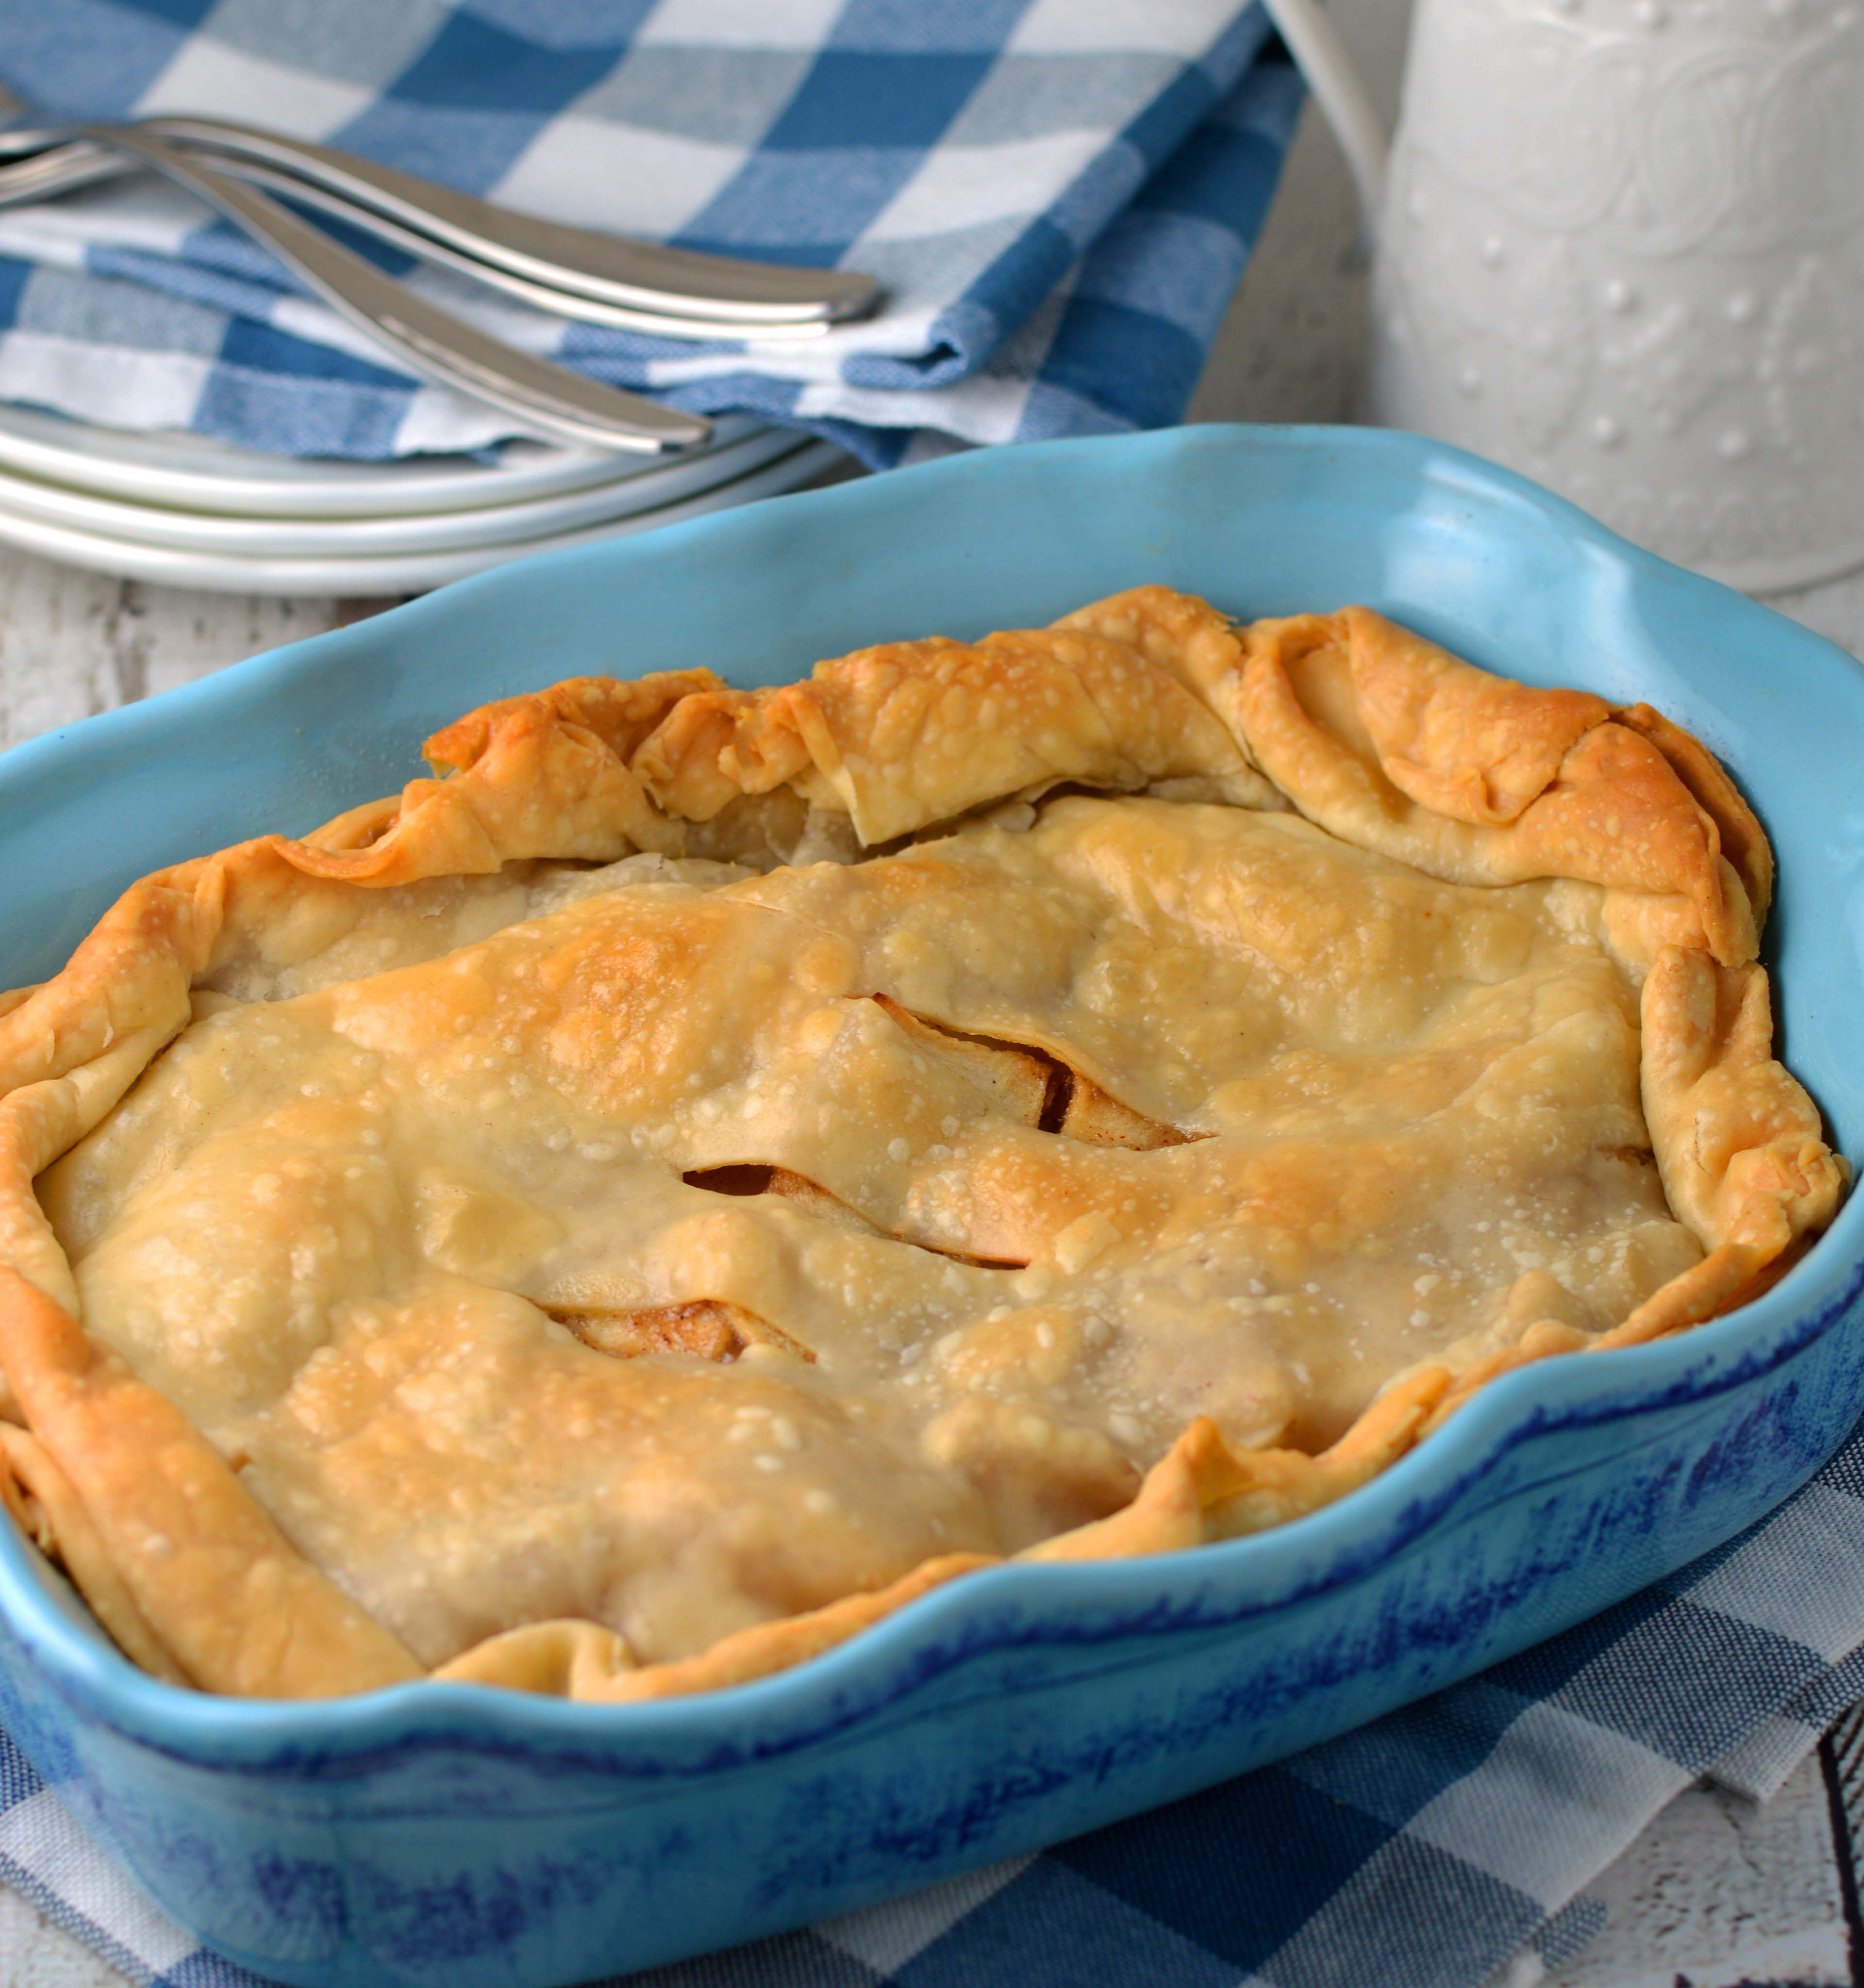 This Scaled Down Apple Pie Only Uses Two Apples And Is